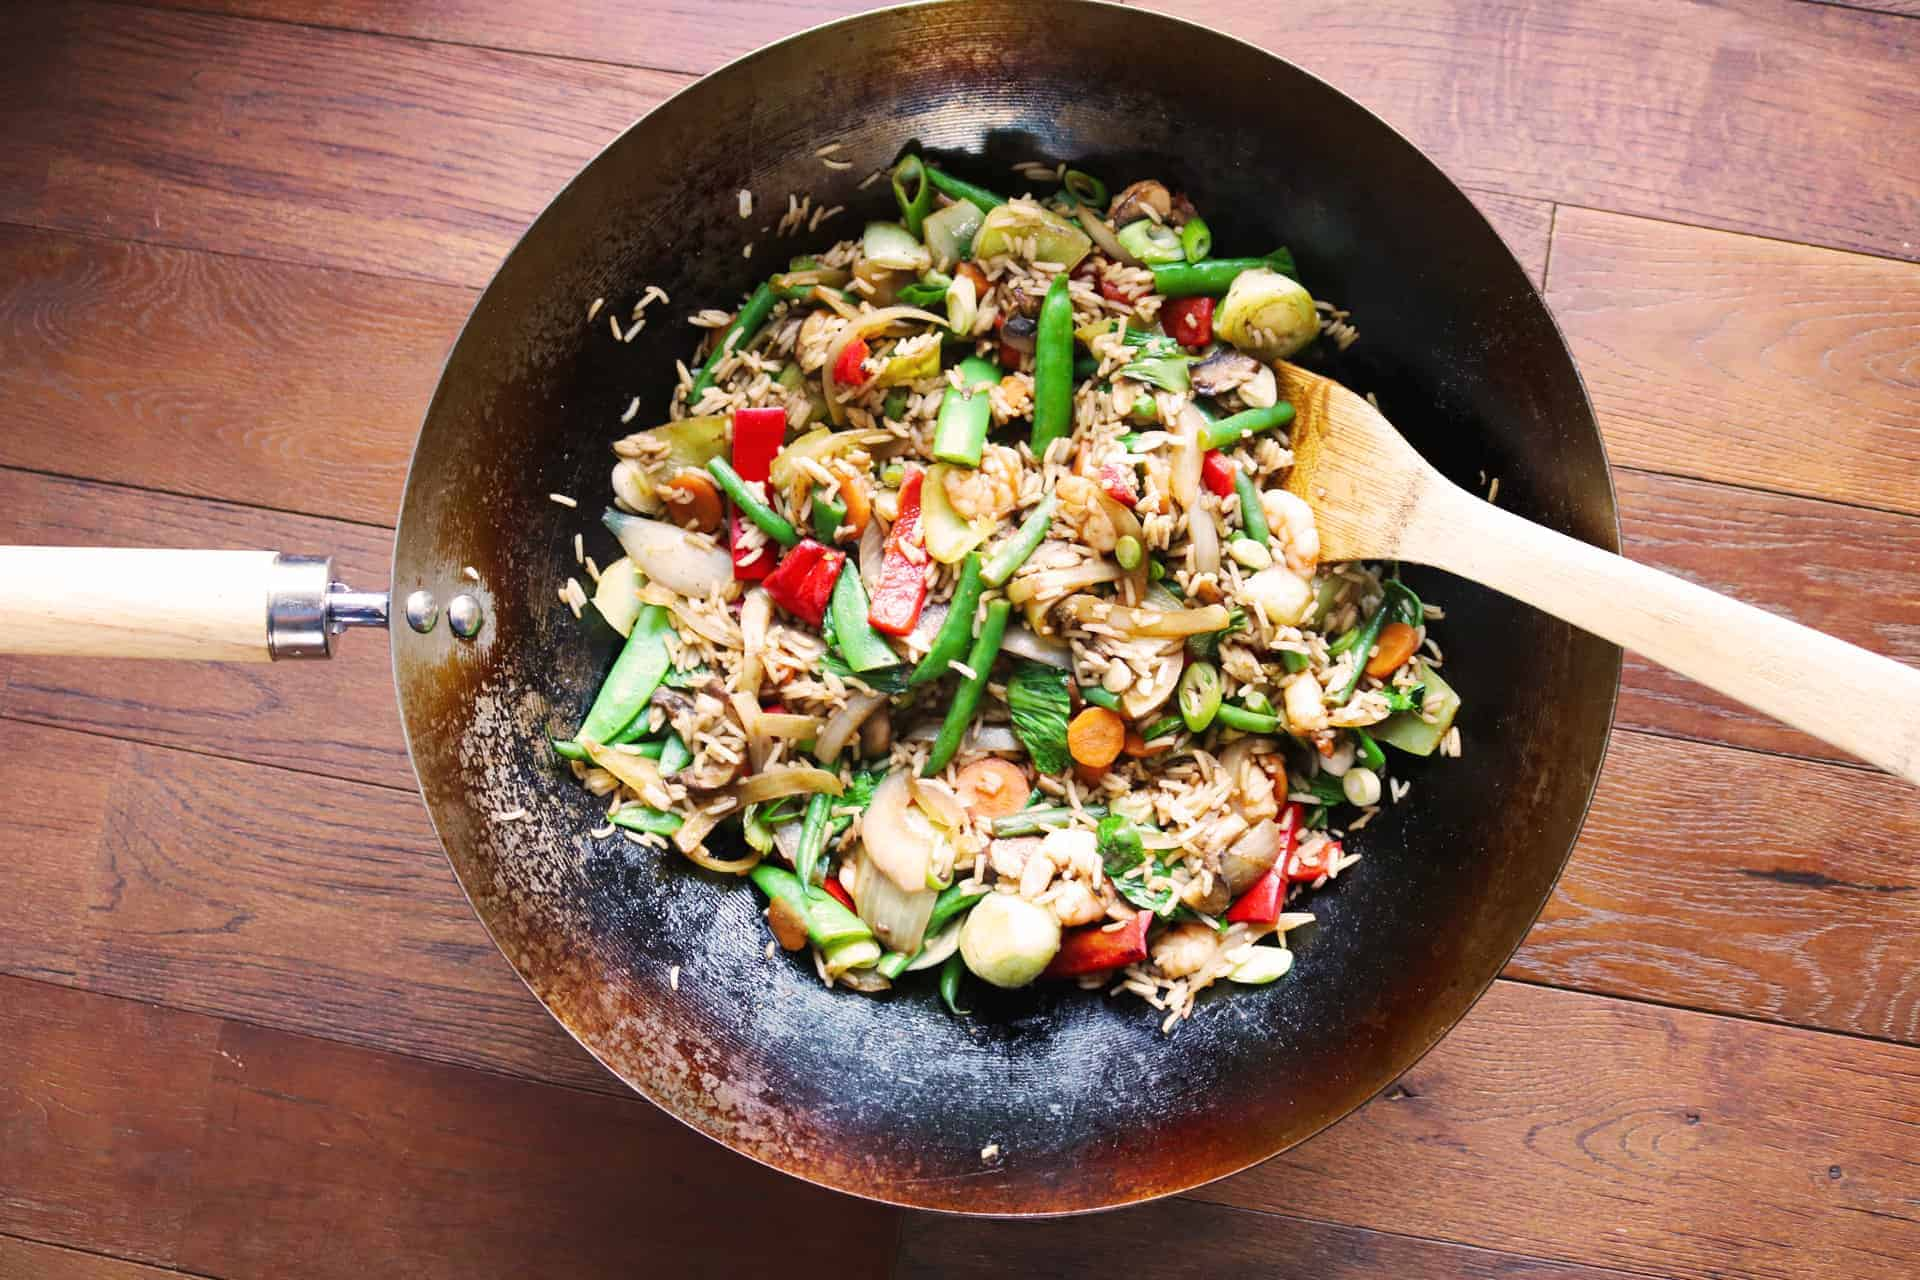 Prawn and Vegetable Fried Rice, Prawn and Vegetable Fried Rice